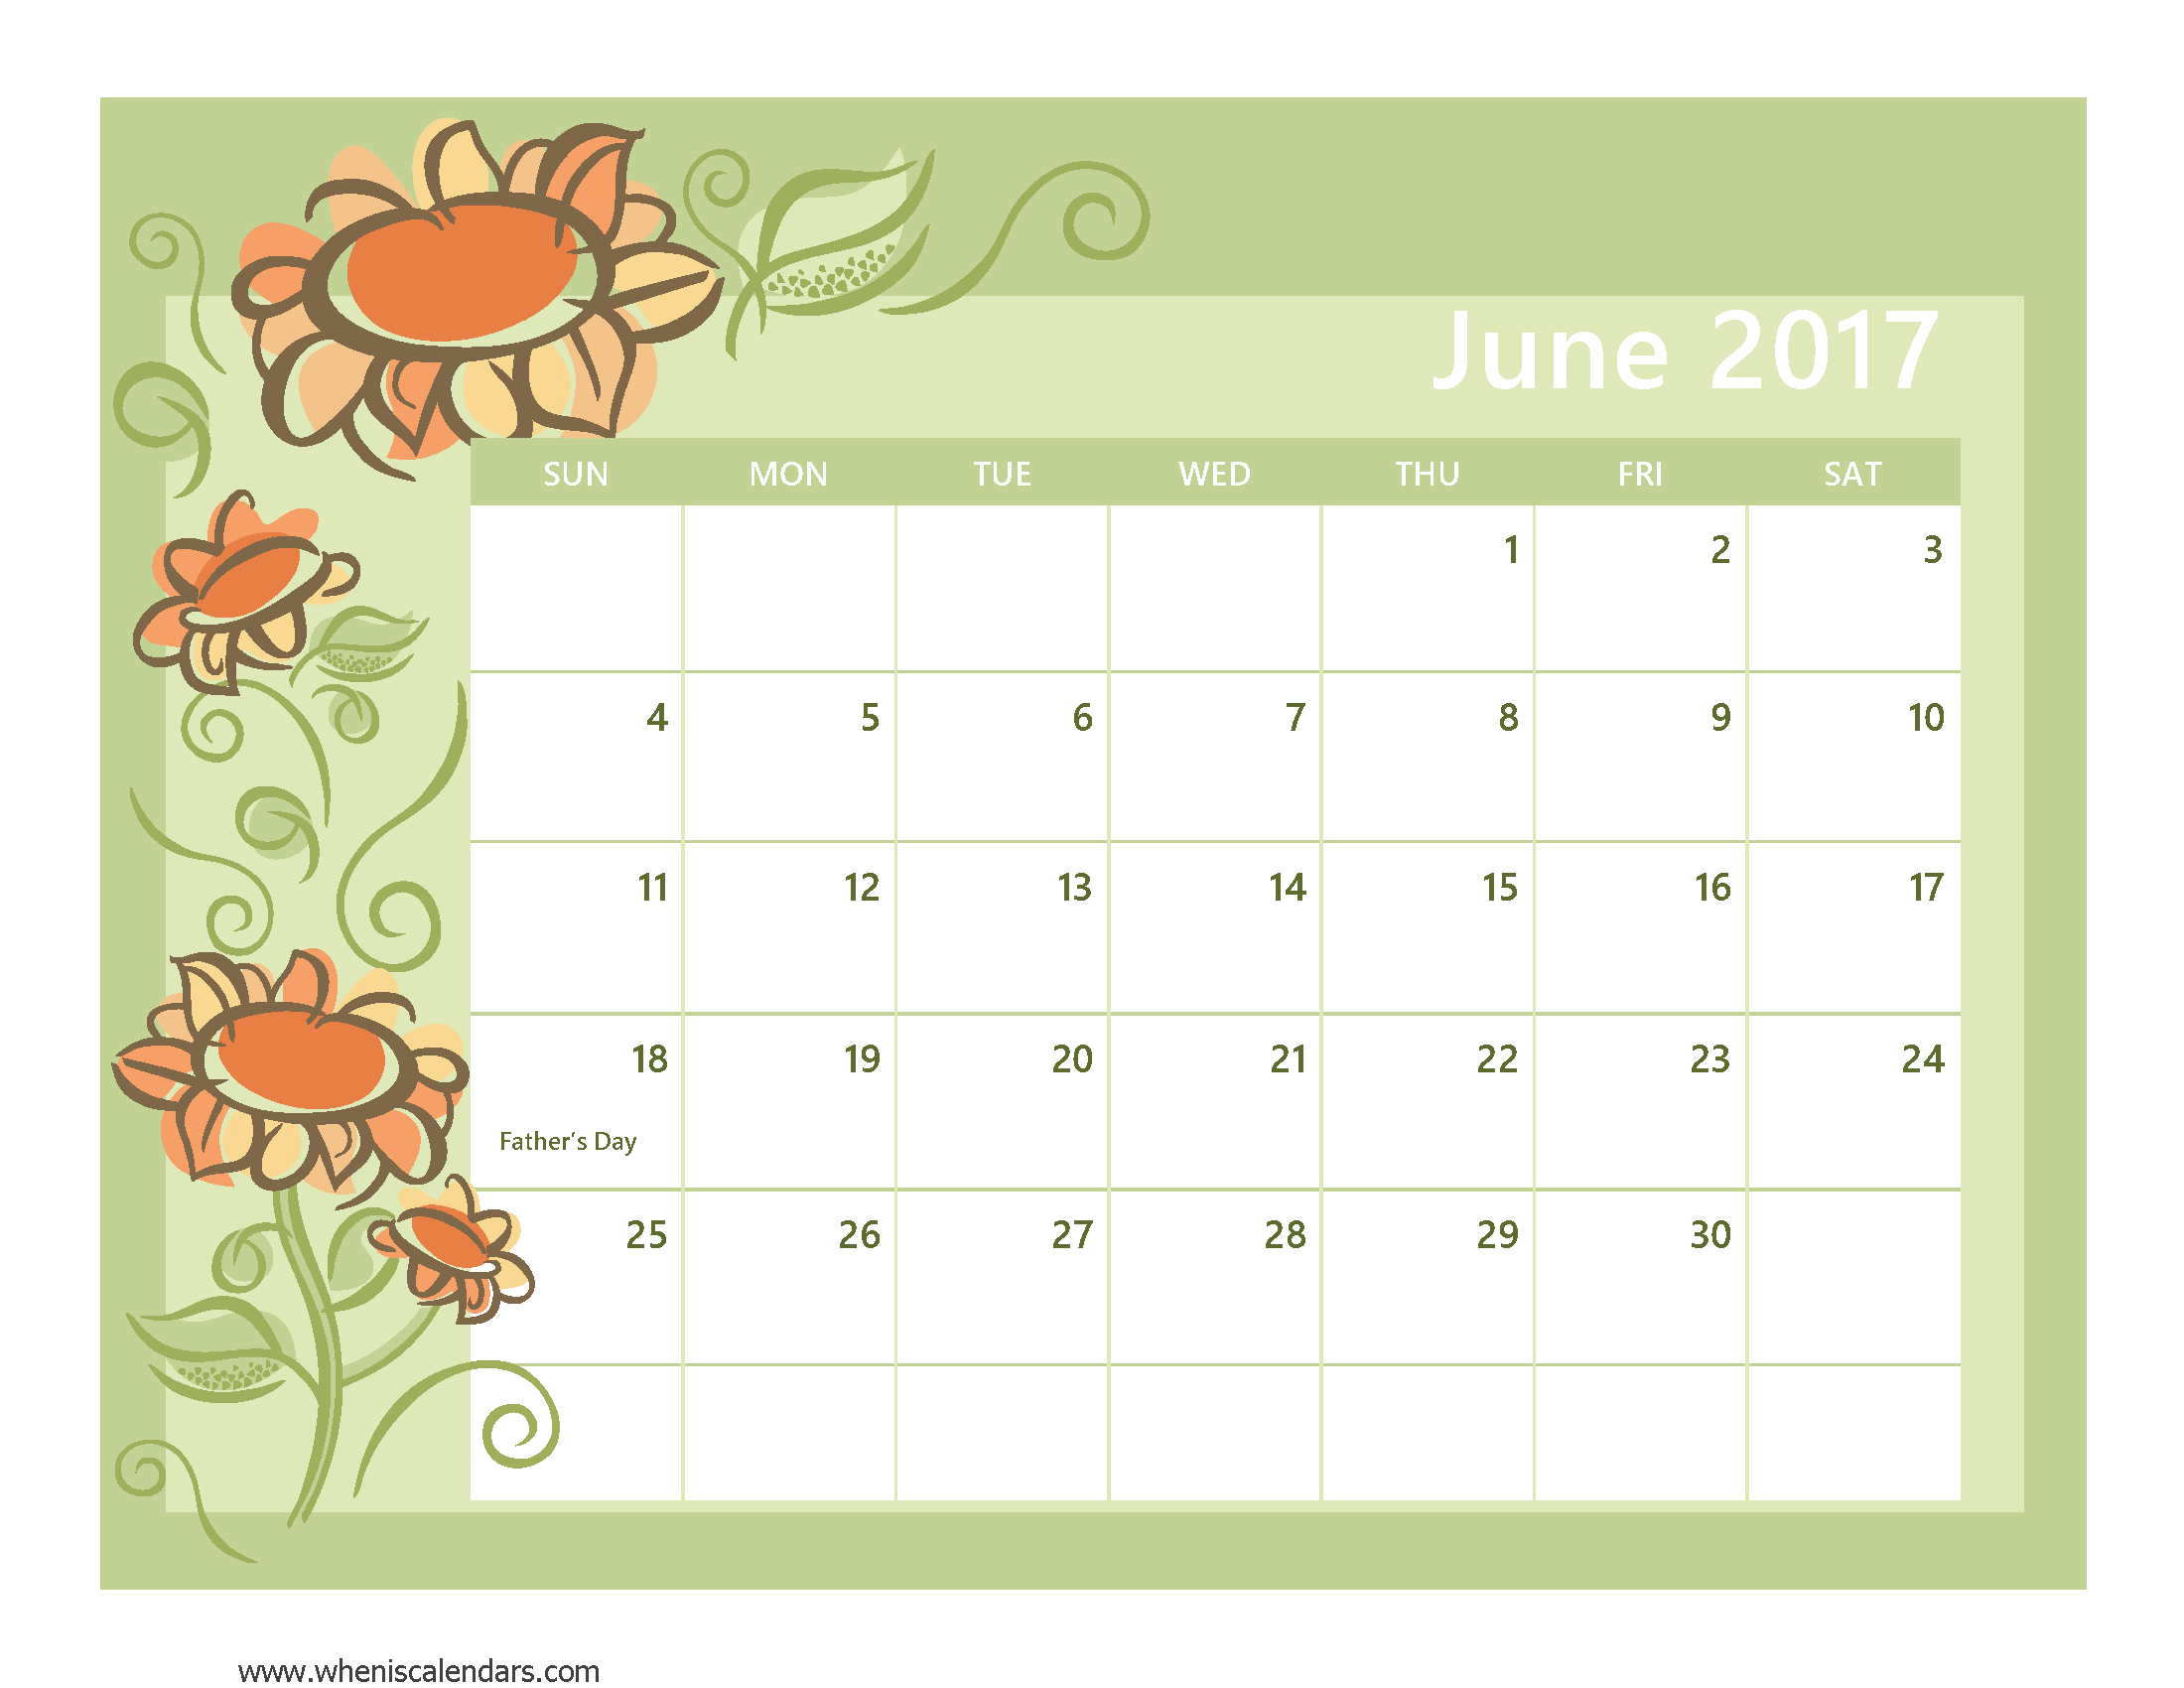 June 2017 Calendar Printable | weekly calendar template